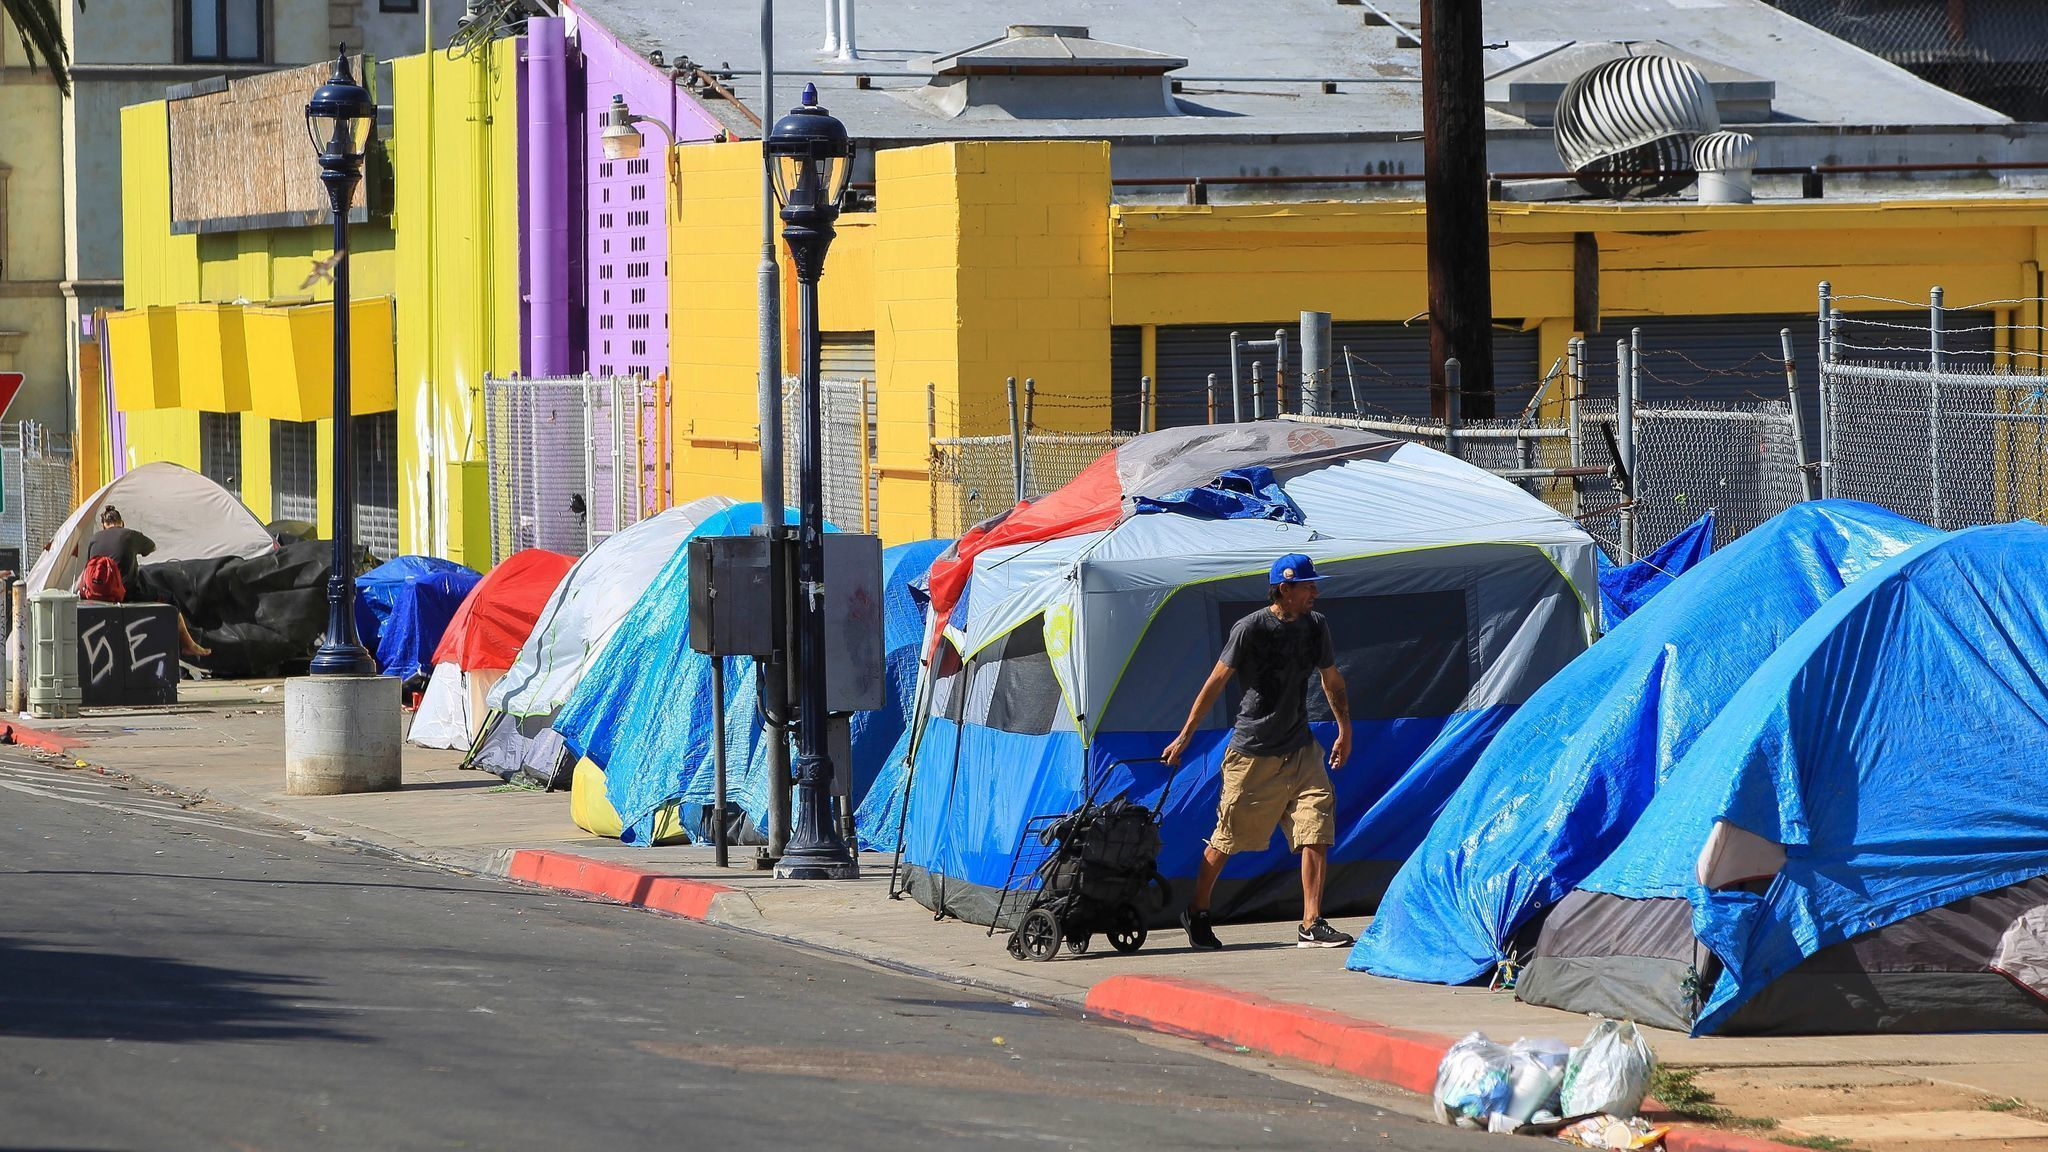 Pilot Program in San Diego aims to pay Homeless People for Cleaning up Trash and Graffiti